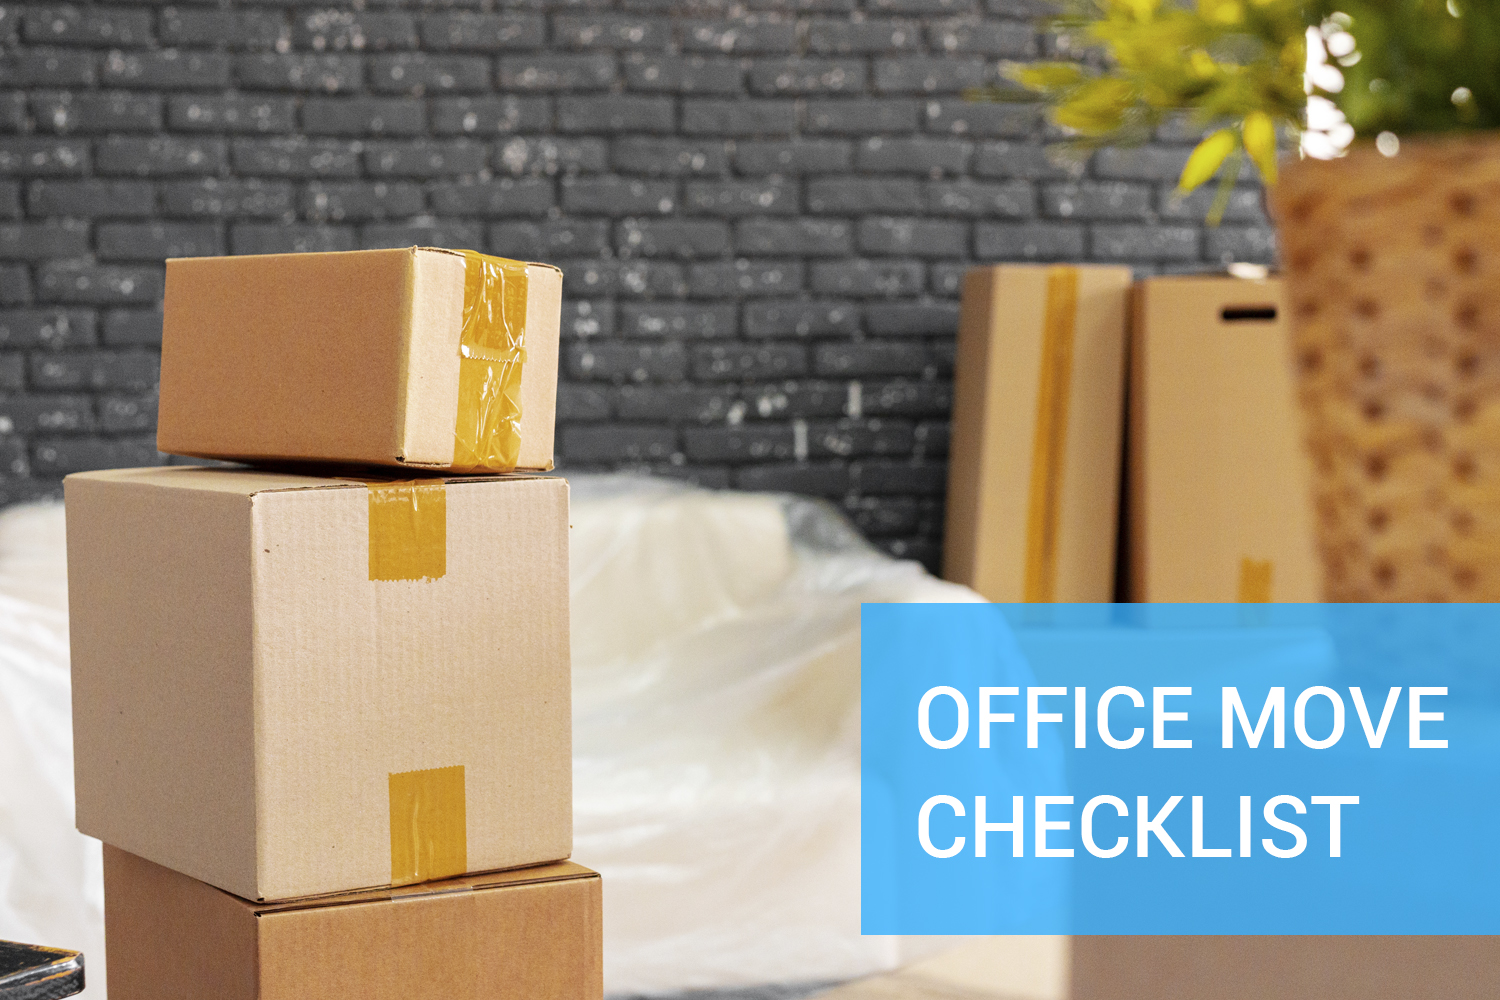 Office Move Checklist: Moving Office Tips for Employees